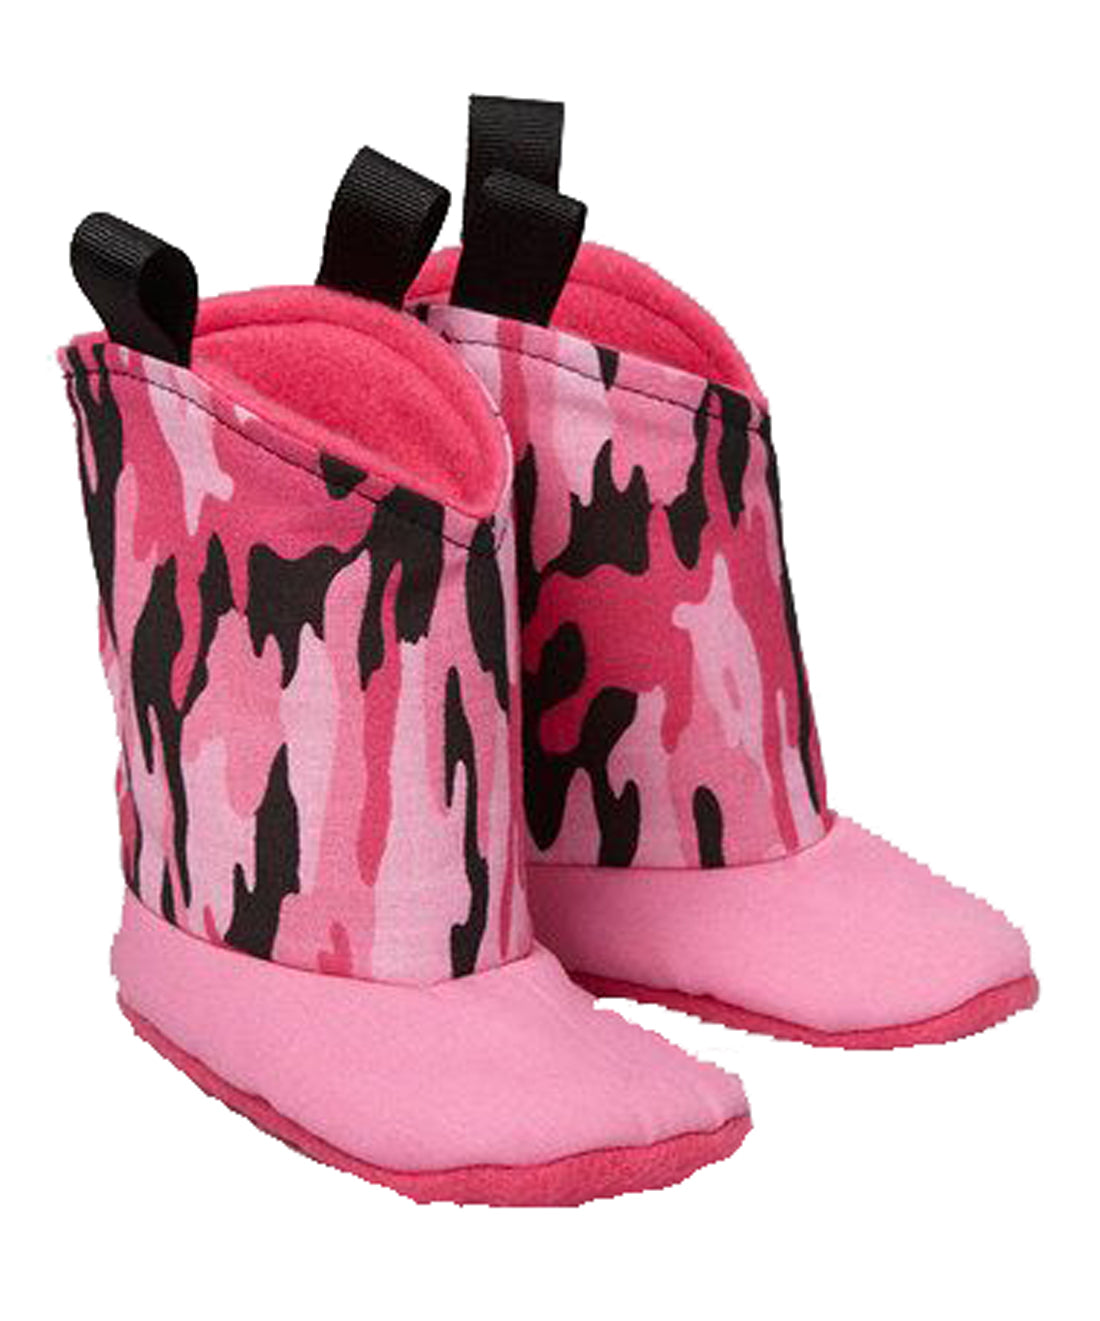 Camo Pink Boot for that little hunter in your life